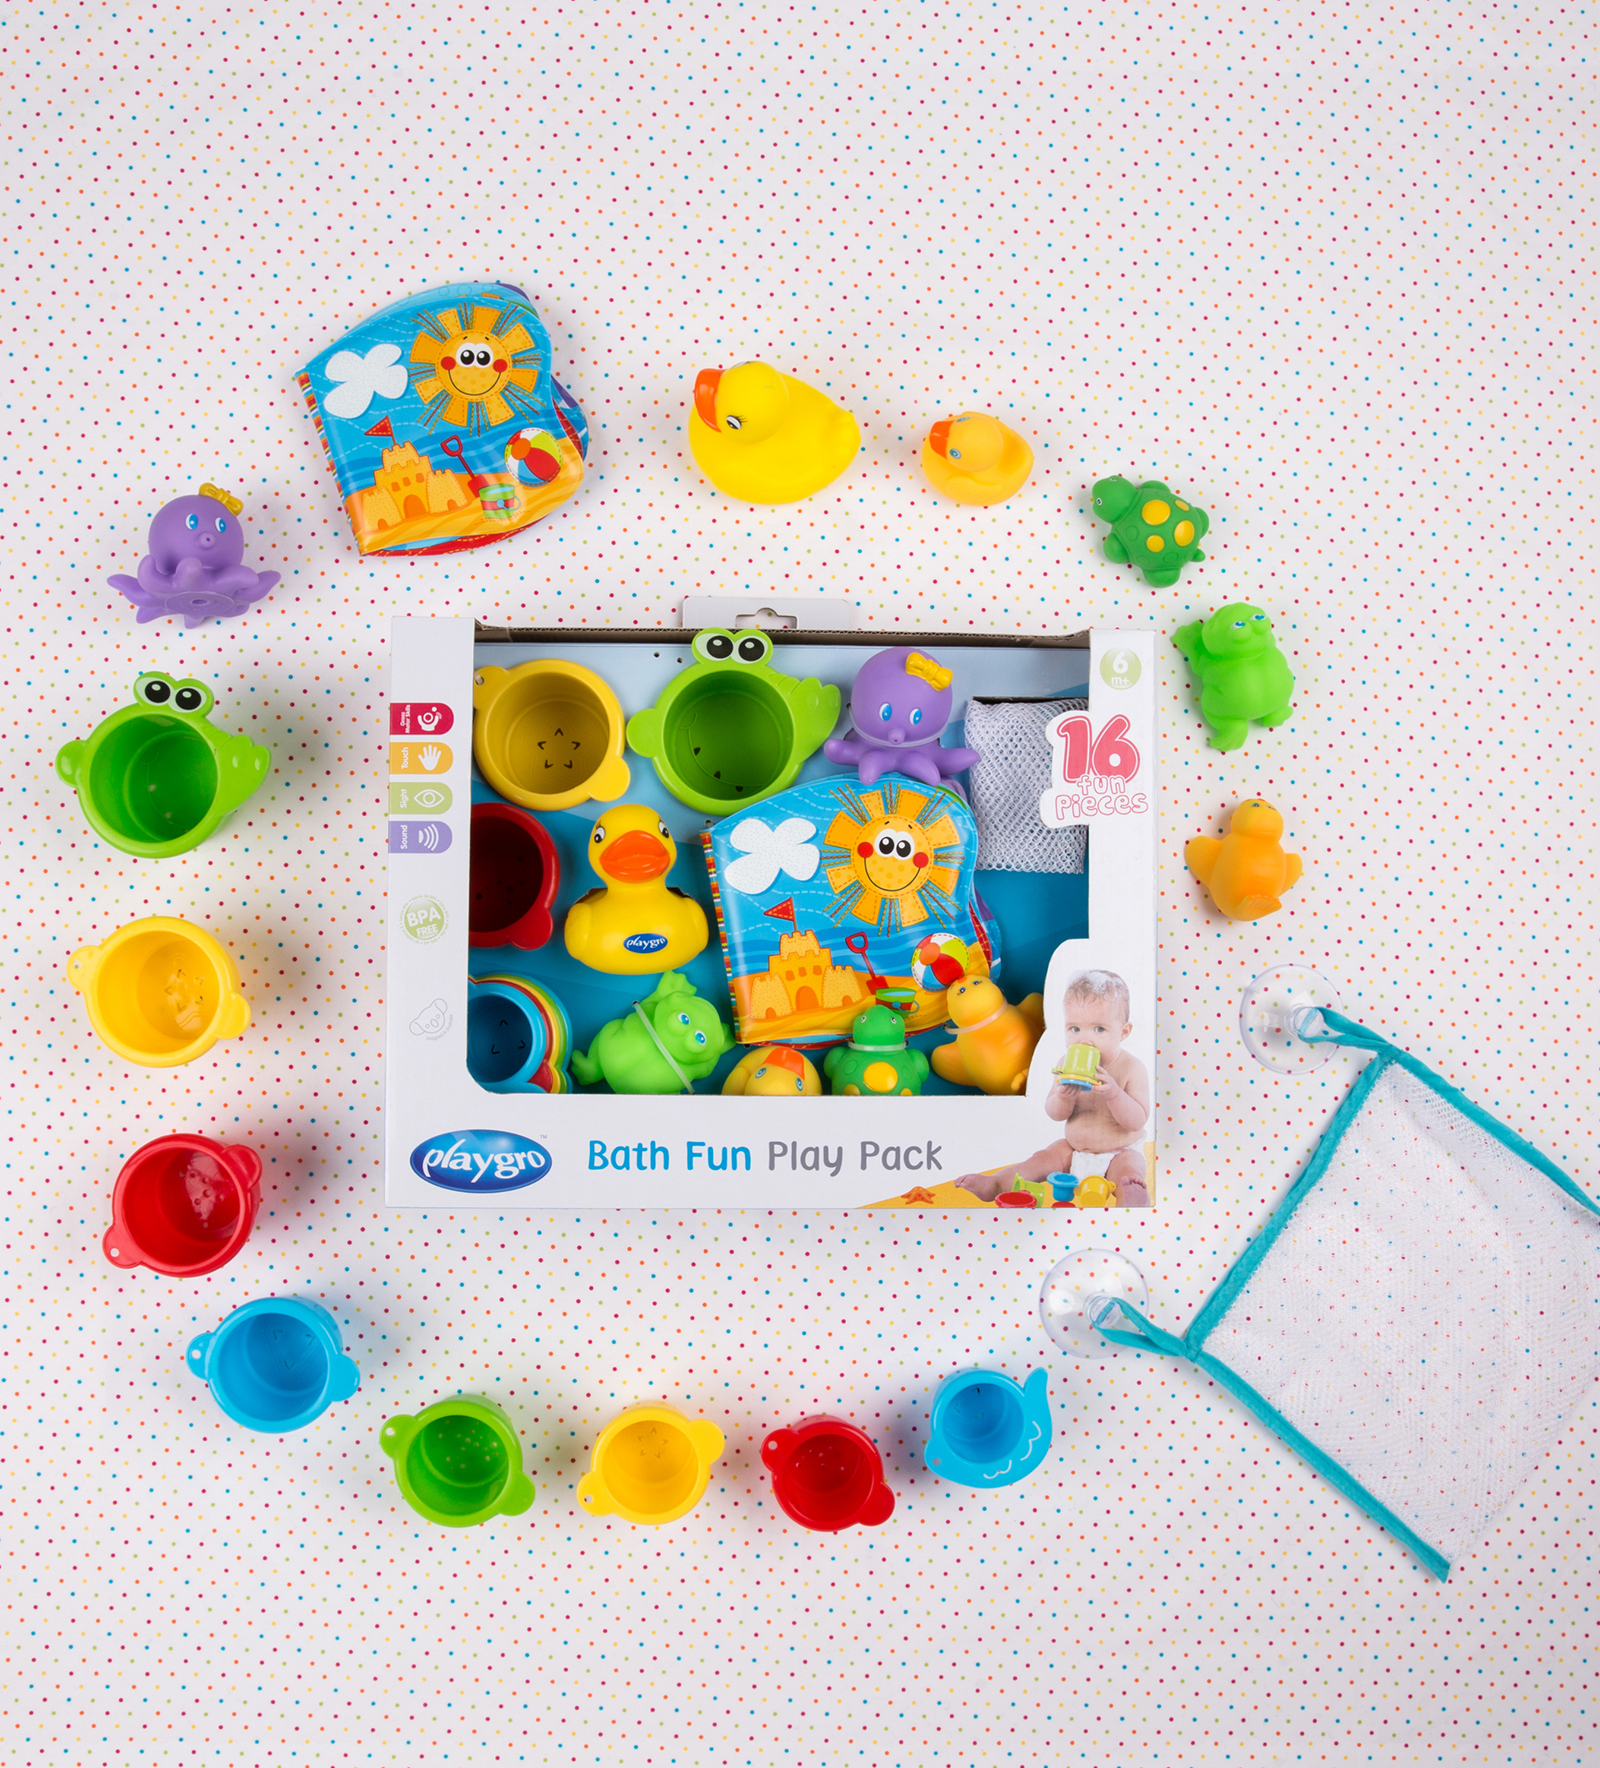 Bath Fun Play Pack 2